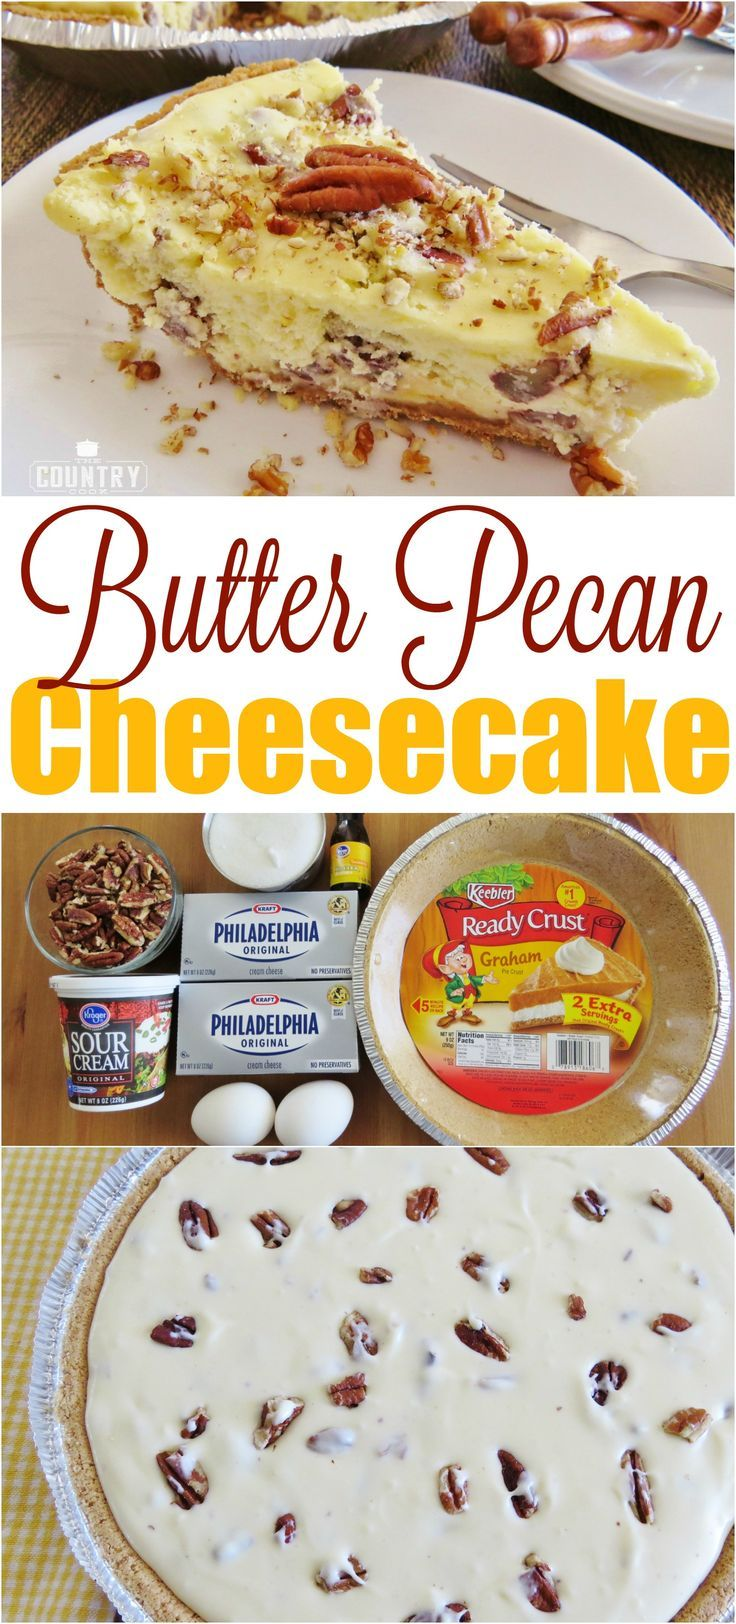 Butter Pecan Cheesecake recipe from The Country Cook